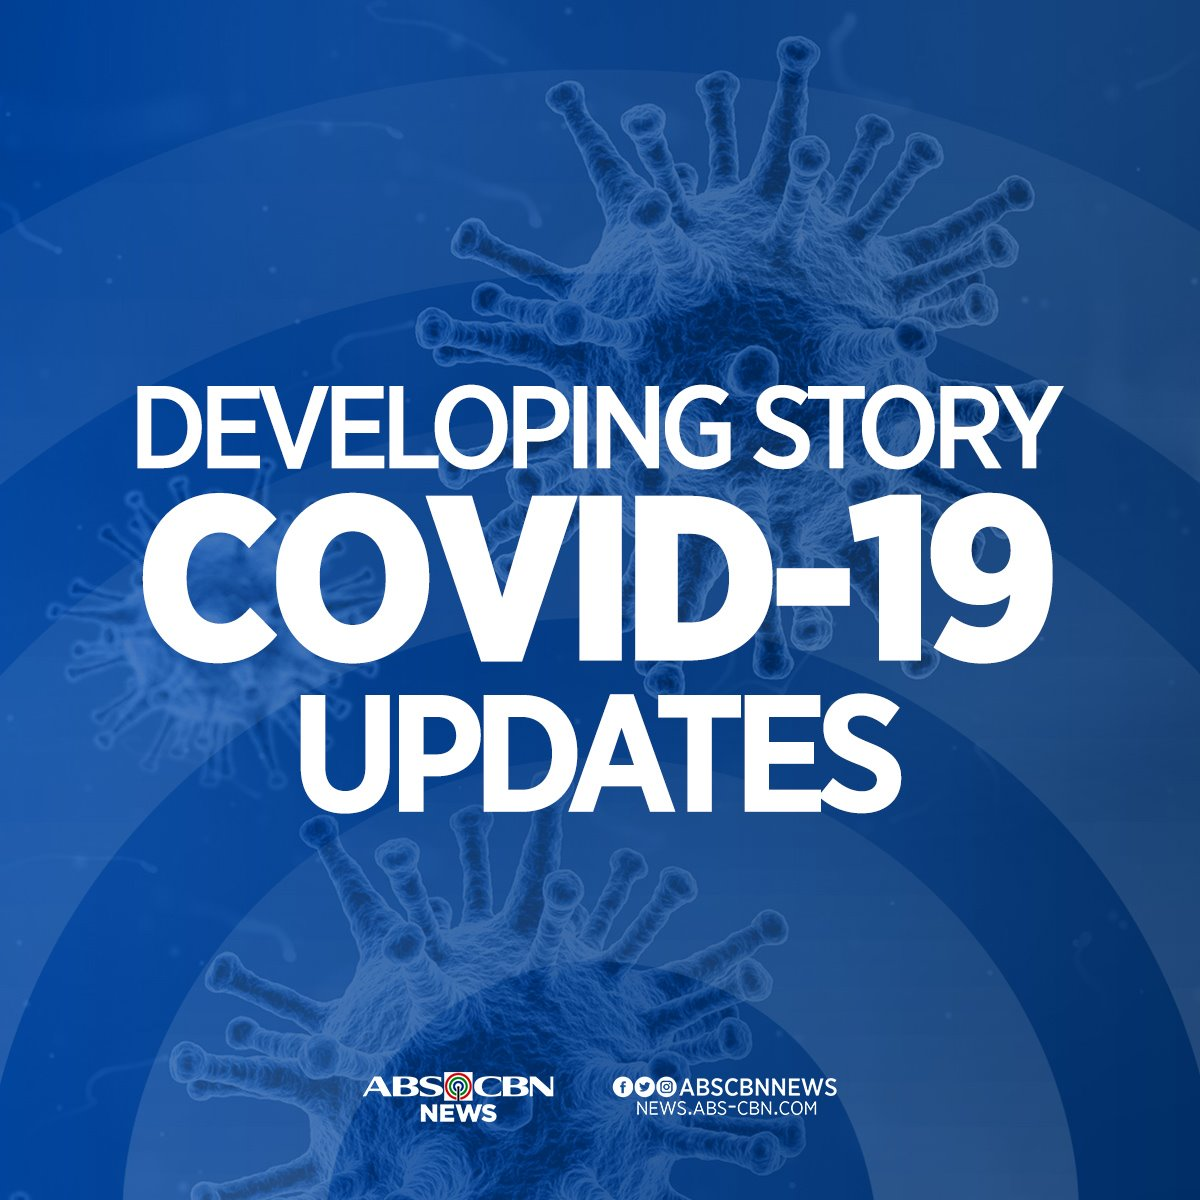 #COVID19 UPDATE: US sets new global record with 1,480 virus deaths in 24 hours: Johns Hopkins | via @AFP